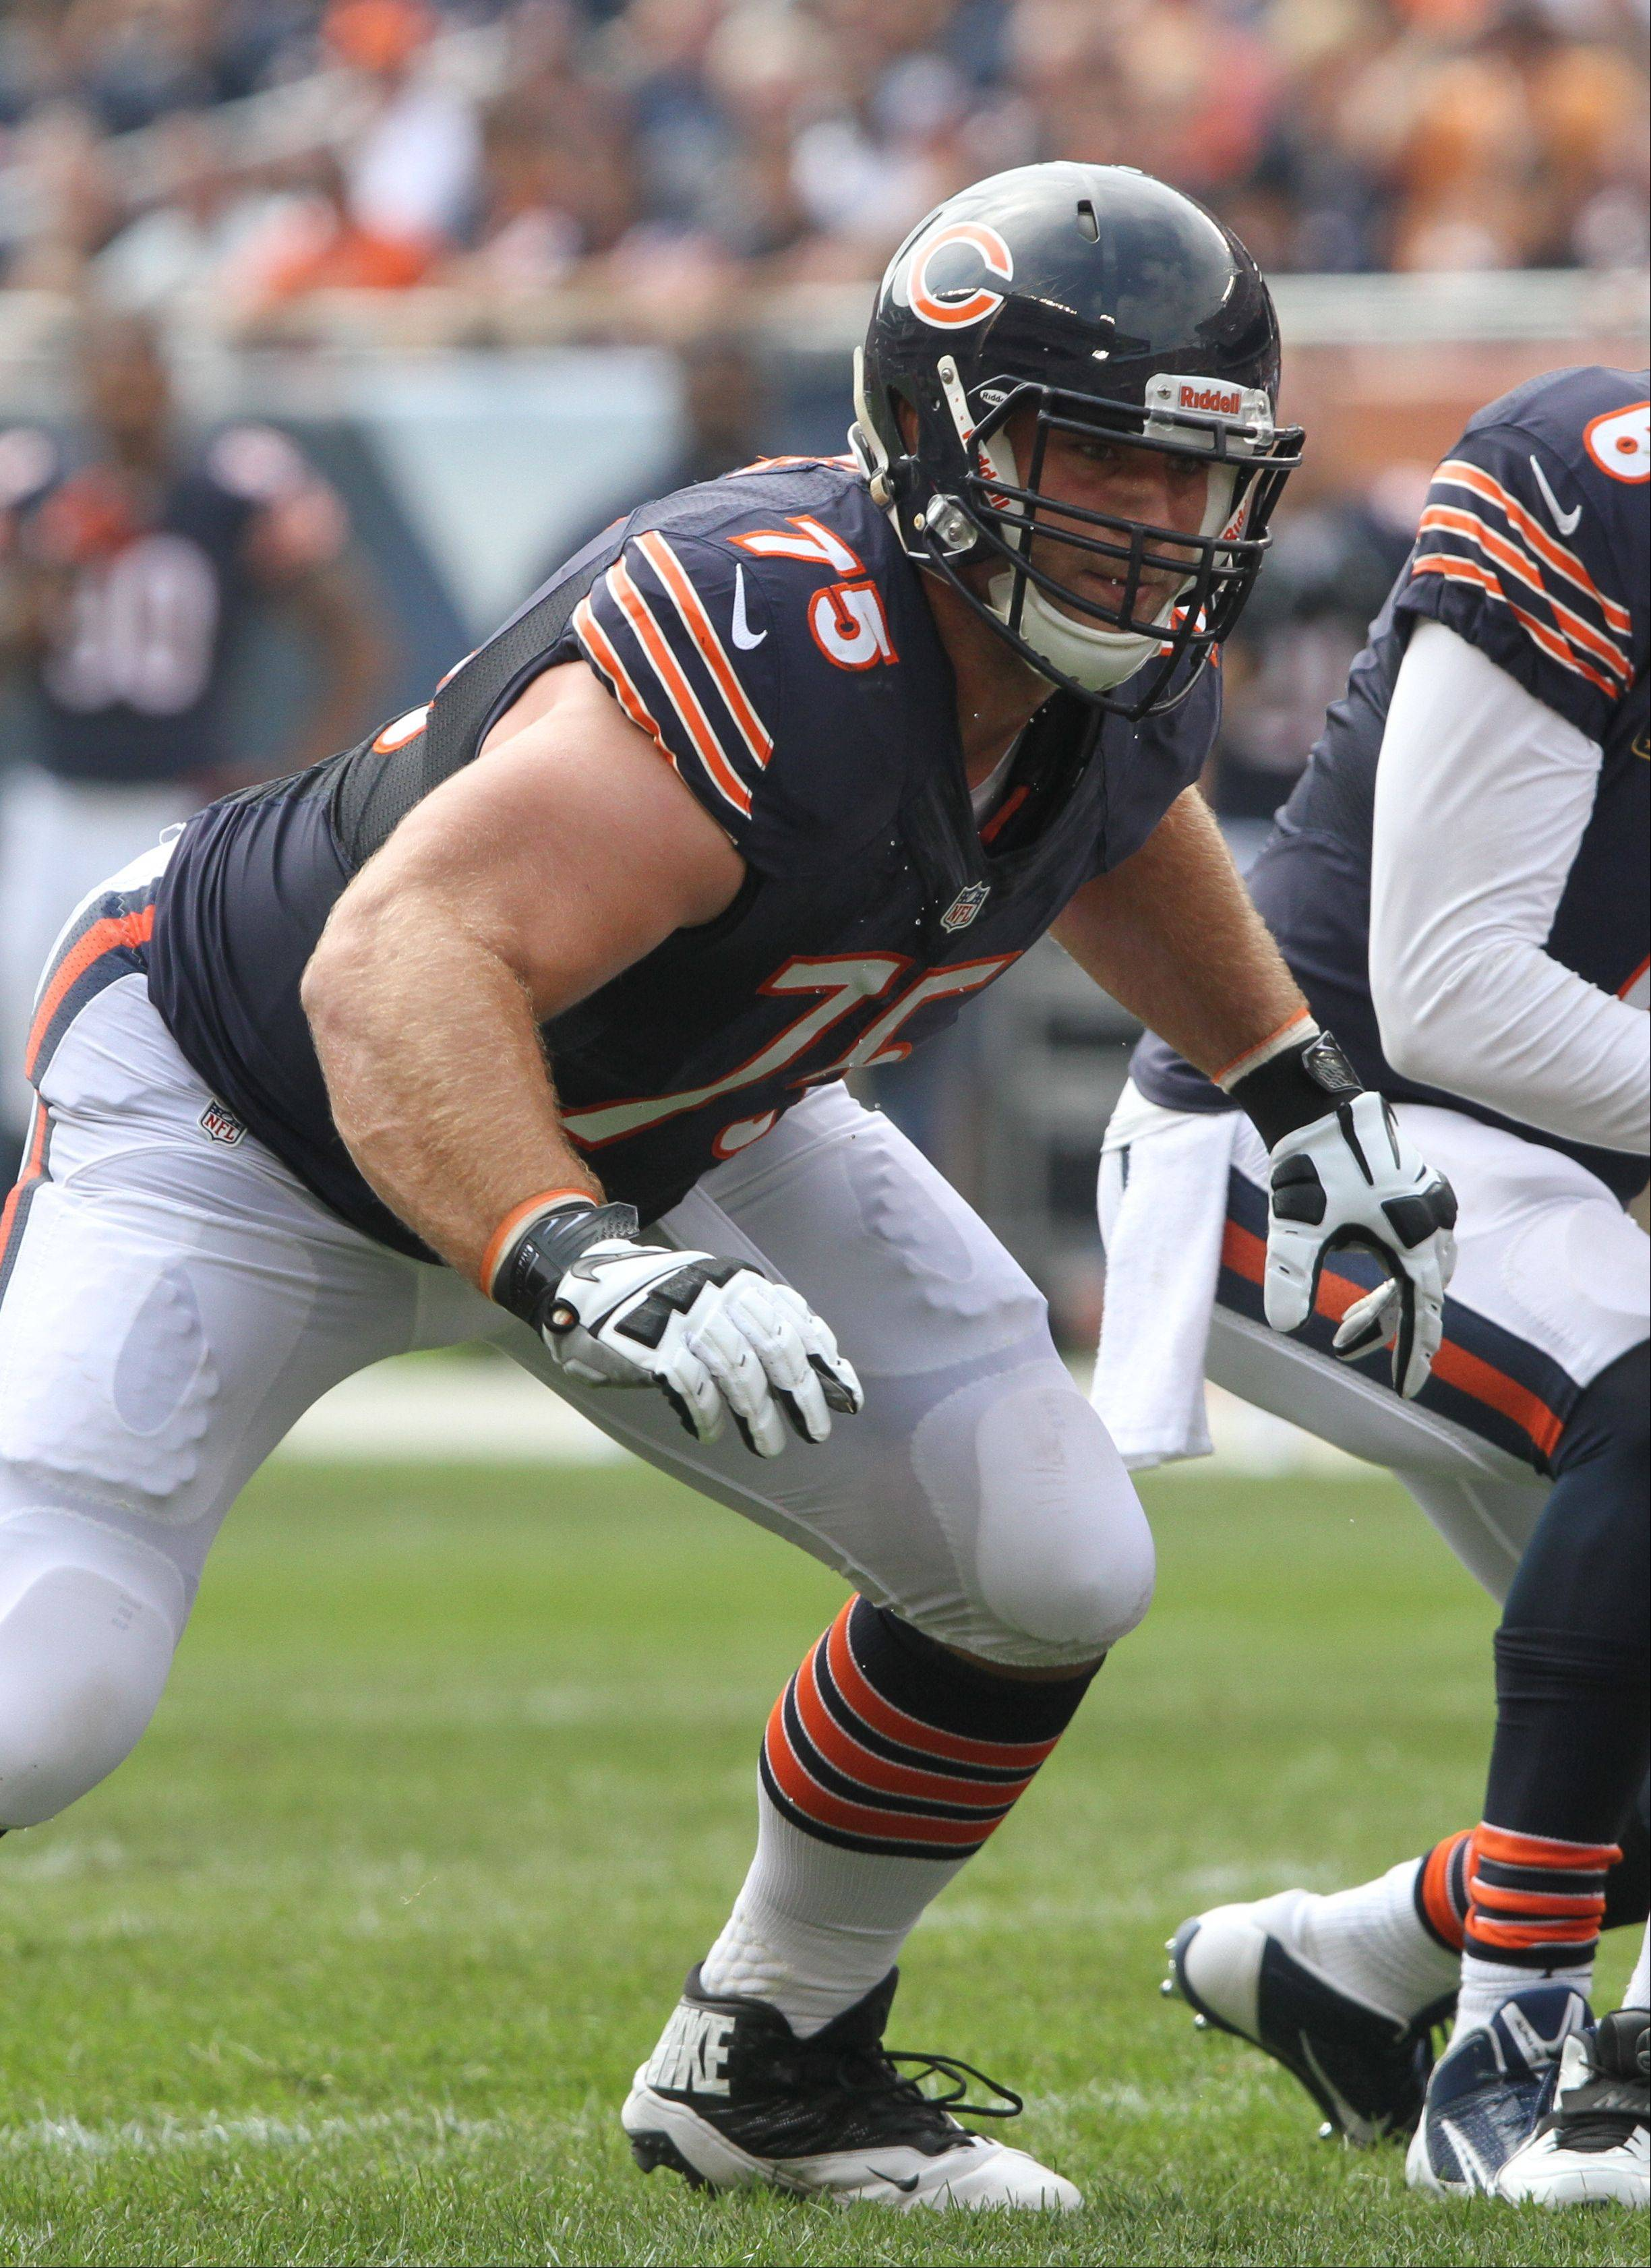 Chicago Bears offensive guard Kyle Long blocks during their opening day game against the Cincinnati Bengals Sunday at Soldier Field in Chicago.